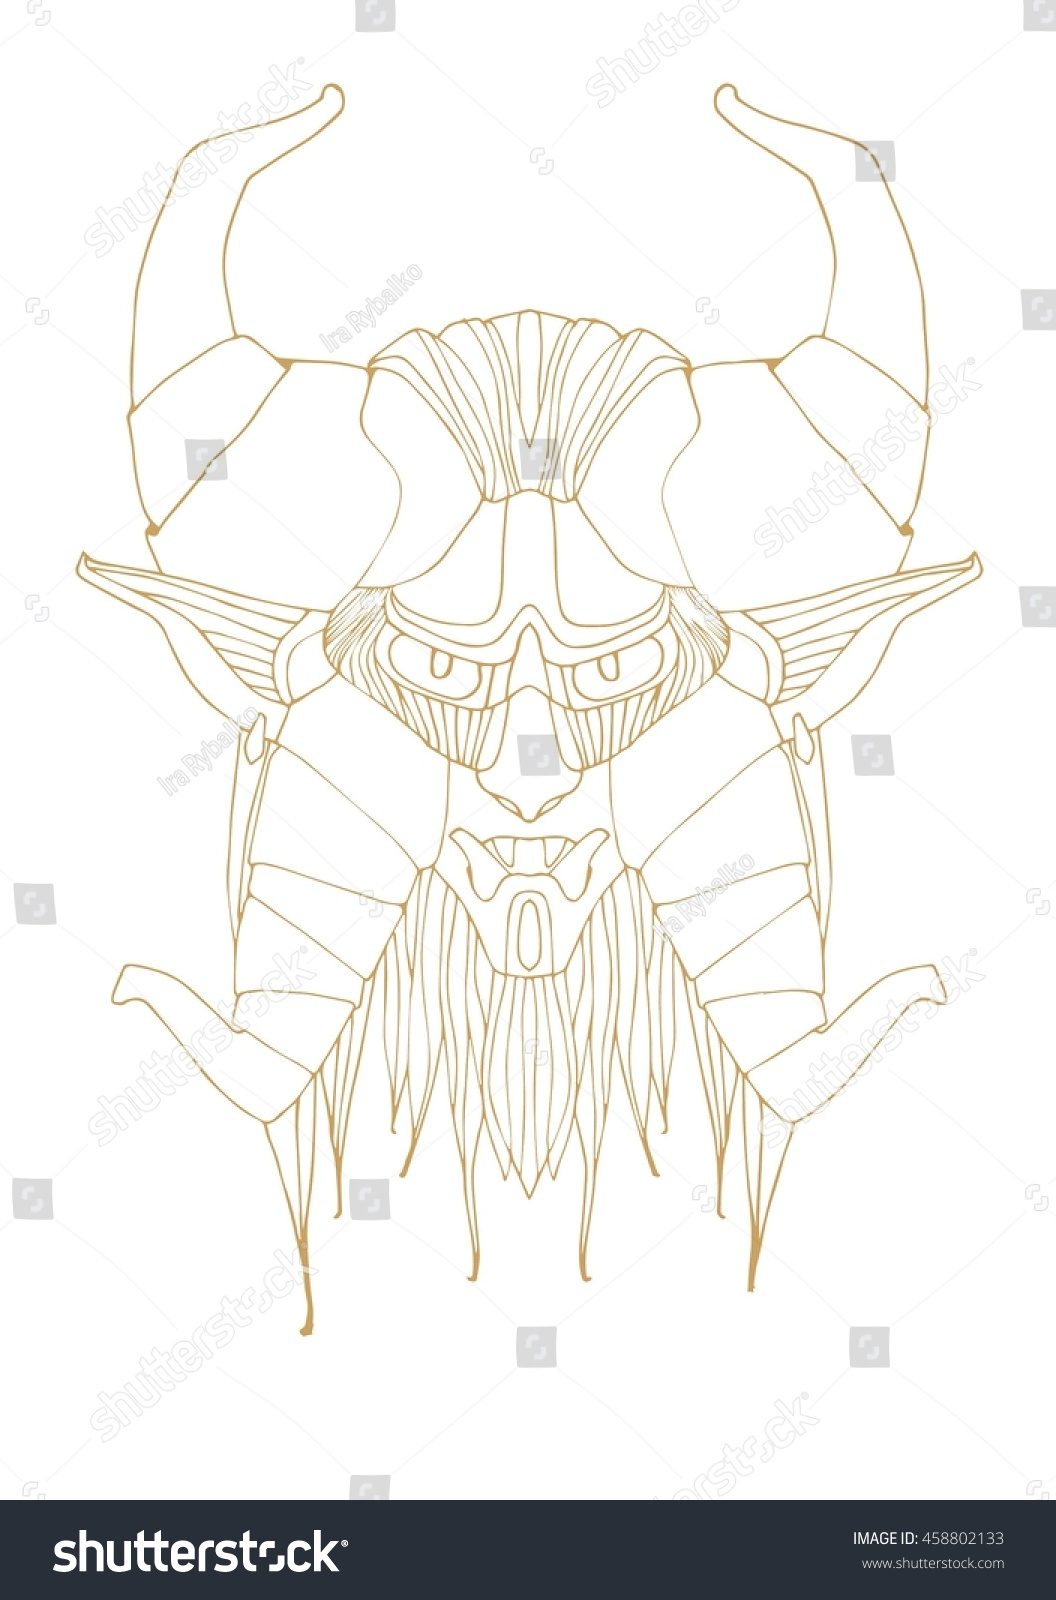 mask evil mythical creatures horns stock vector royalty free